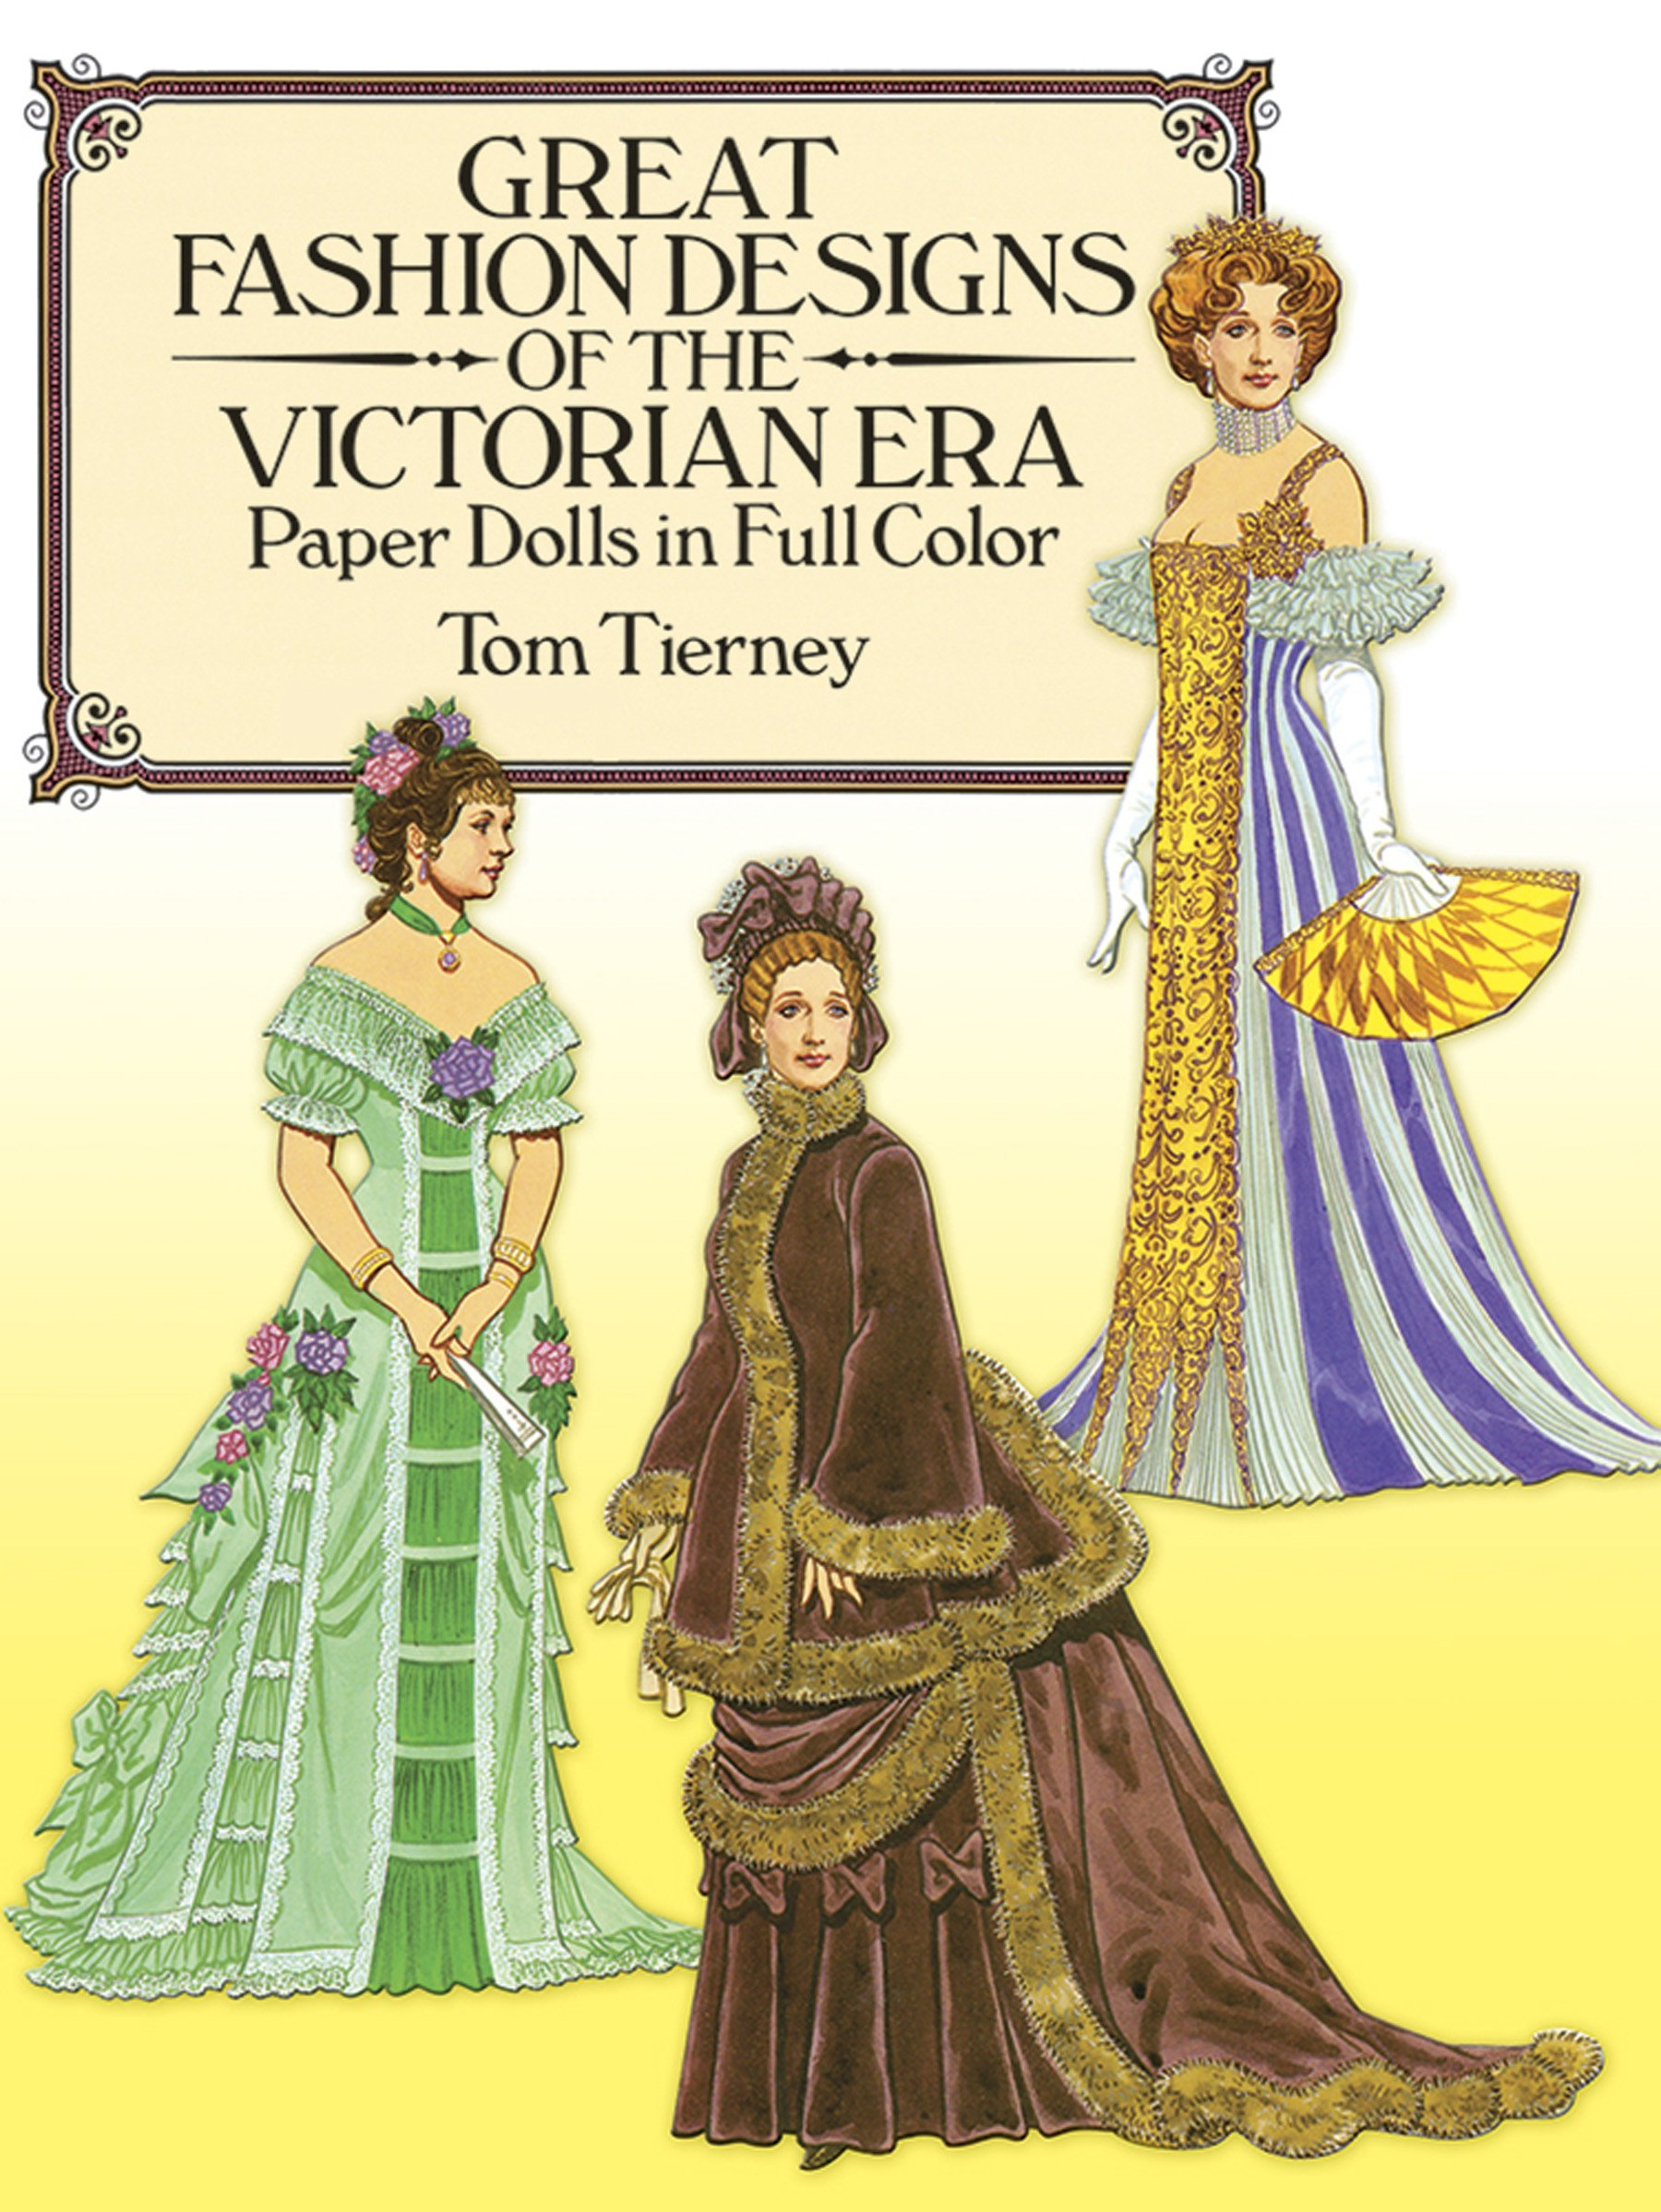 Victoria coloring dresses victorian clothes colouring pages page 2 - Great Fashion Designs Of The Victorian Era Paper Dolls In Full Color Dover Victorian Paper Dolls Tom Tierney 9780486255279 Amazon Com Books